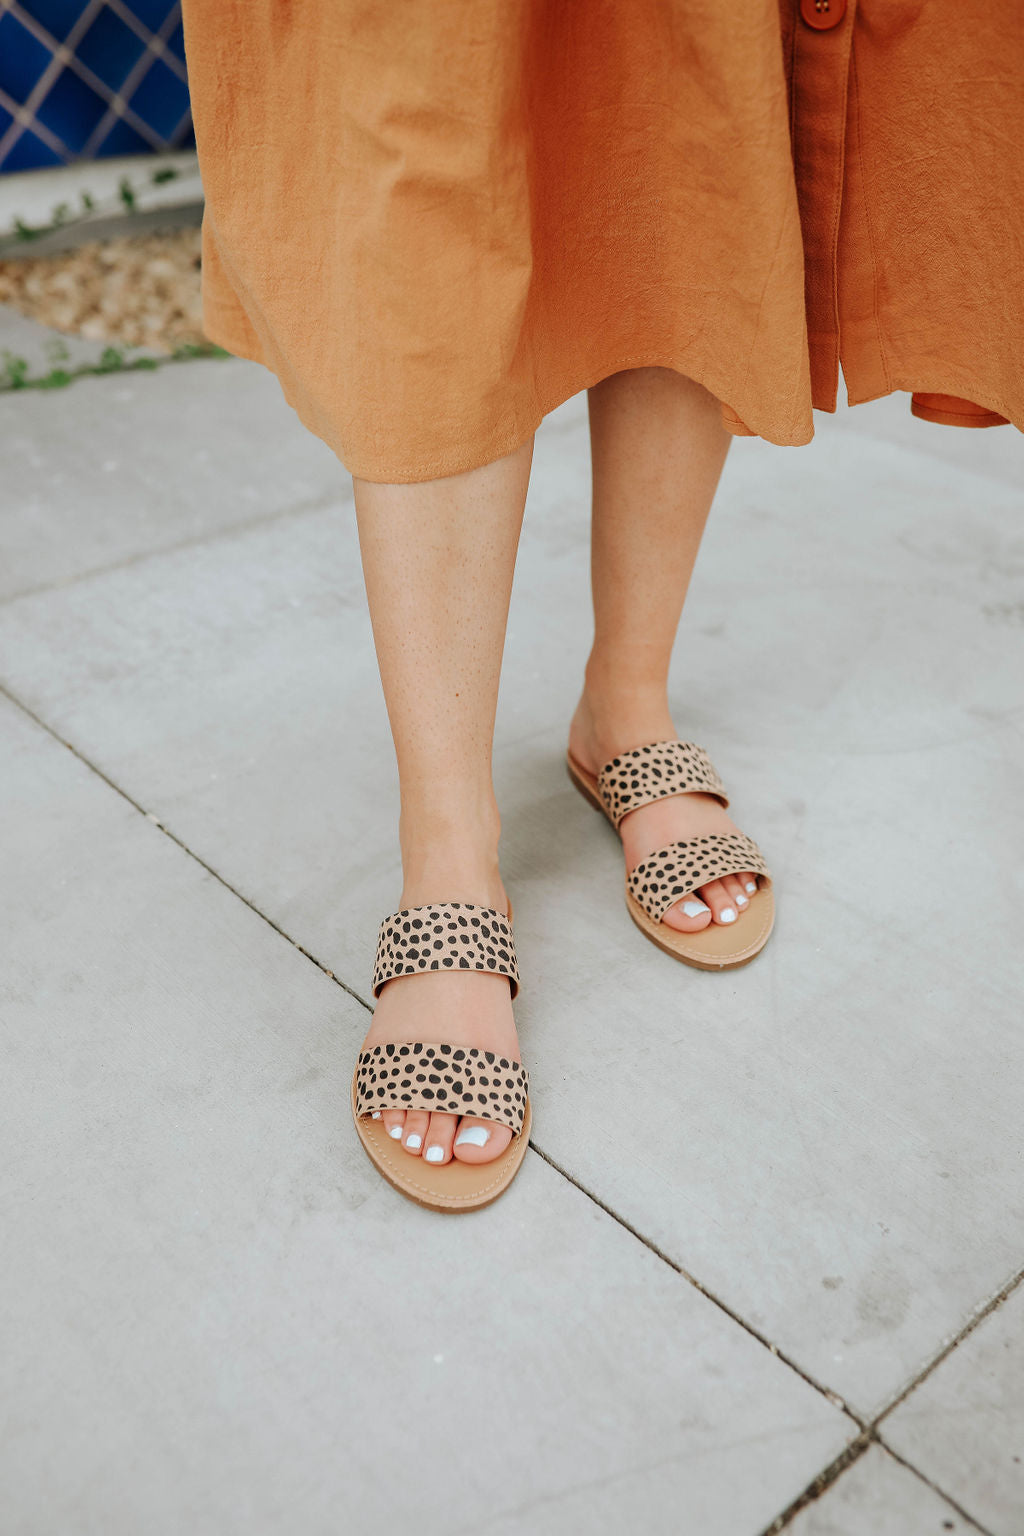 THE DOUBLE STRAP SANDAL IN CHEETAH